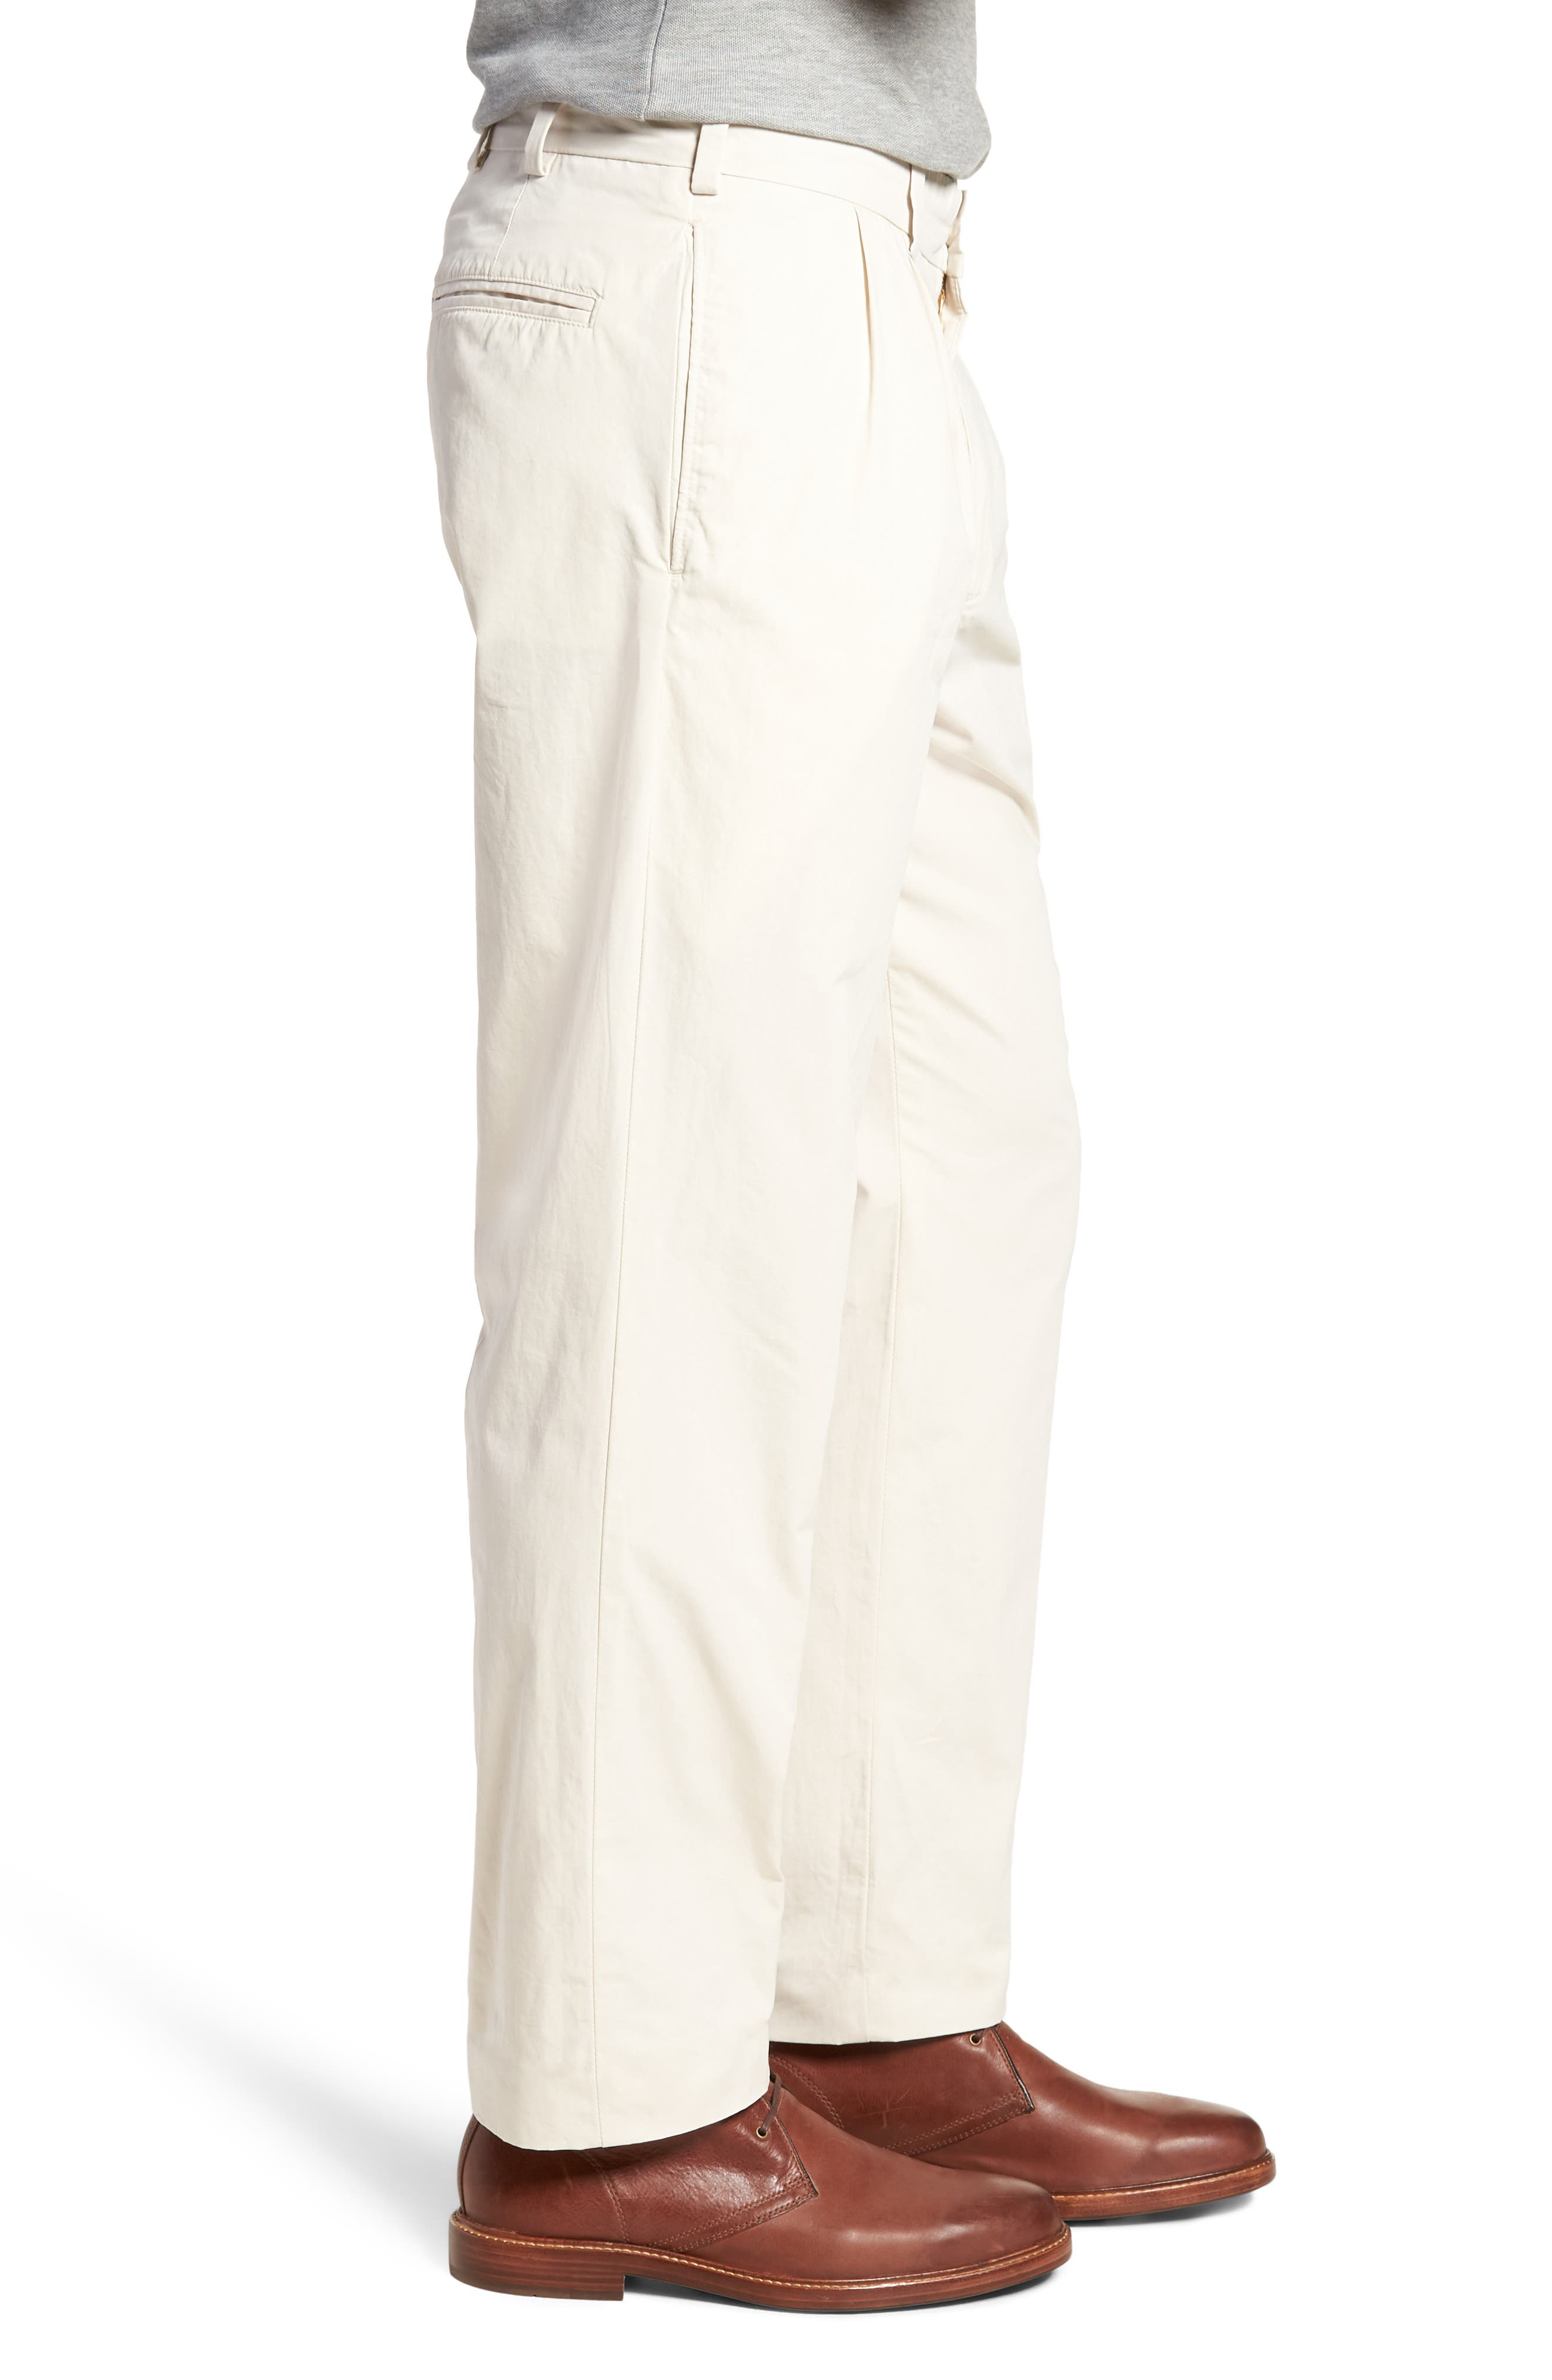 M2 Classic Fit Pleated Tropical Cotton Poplin Pants,                             Alternate thumbnail 3, color,                             Sand